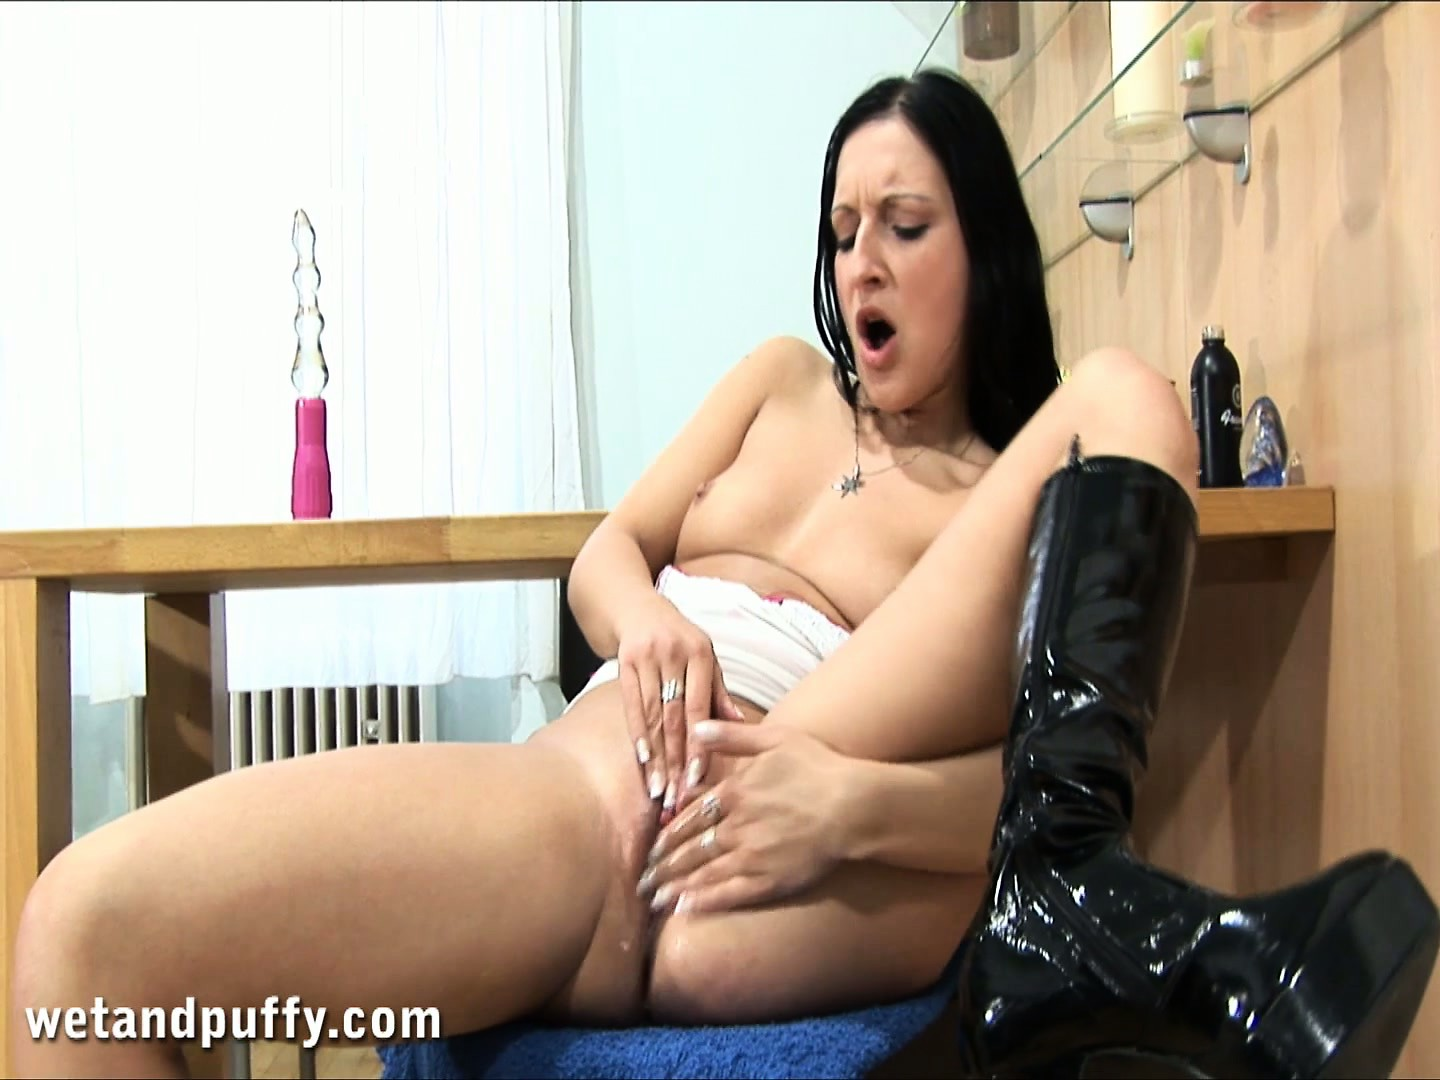 Porn Tube of Hot Brunette With A Splendid Ass Joyce Drives Her Peach To Orgasm With A Dildo